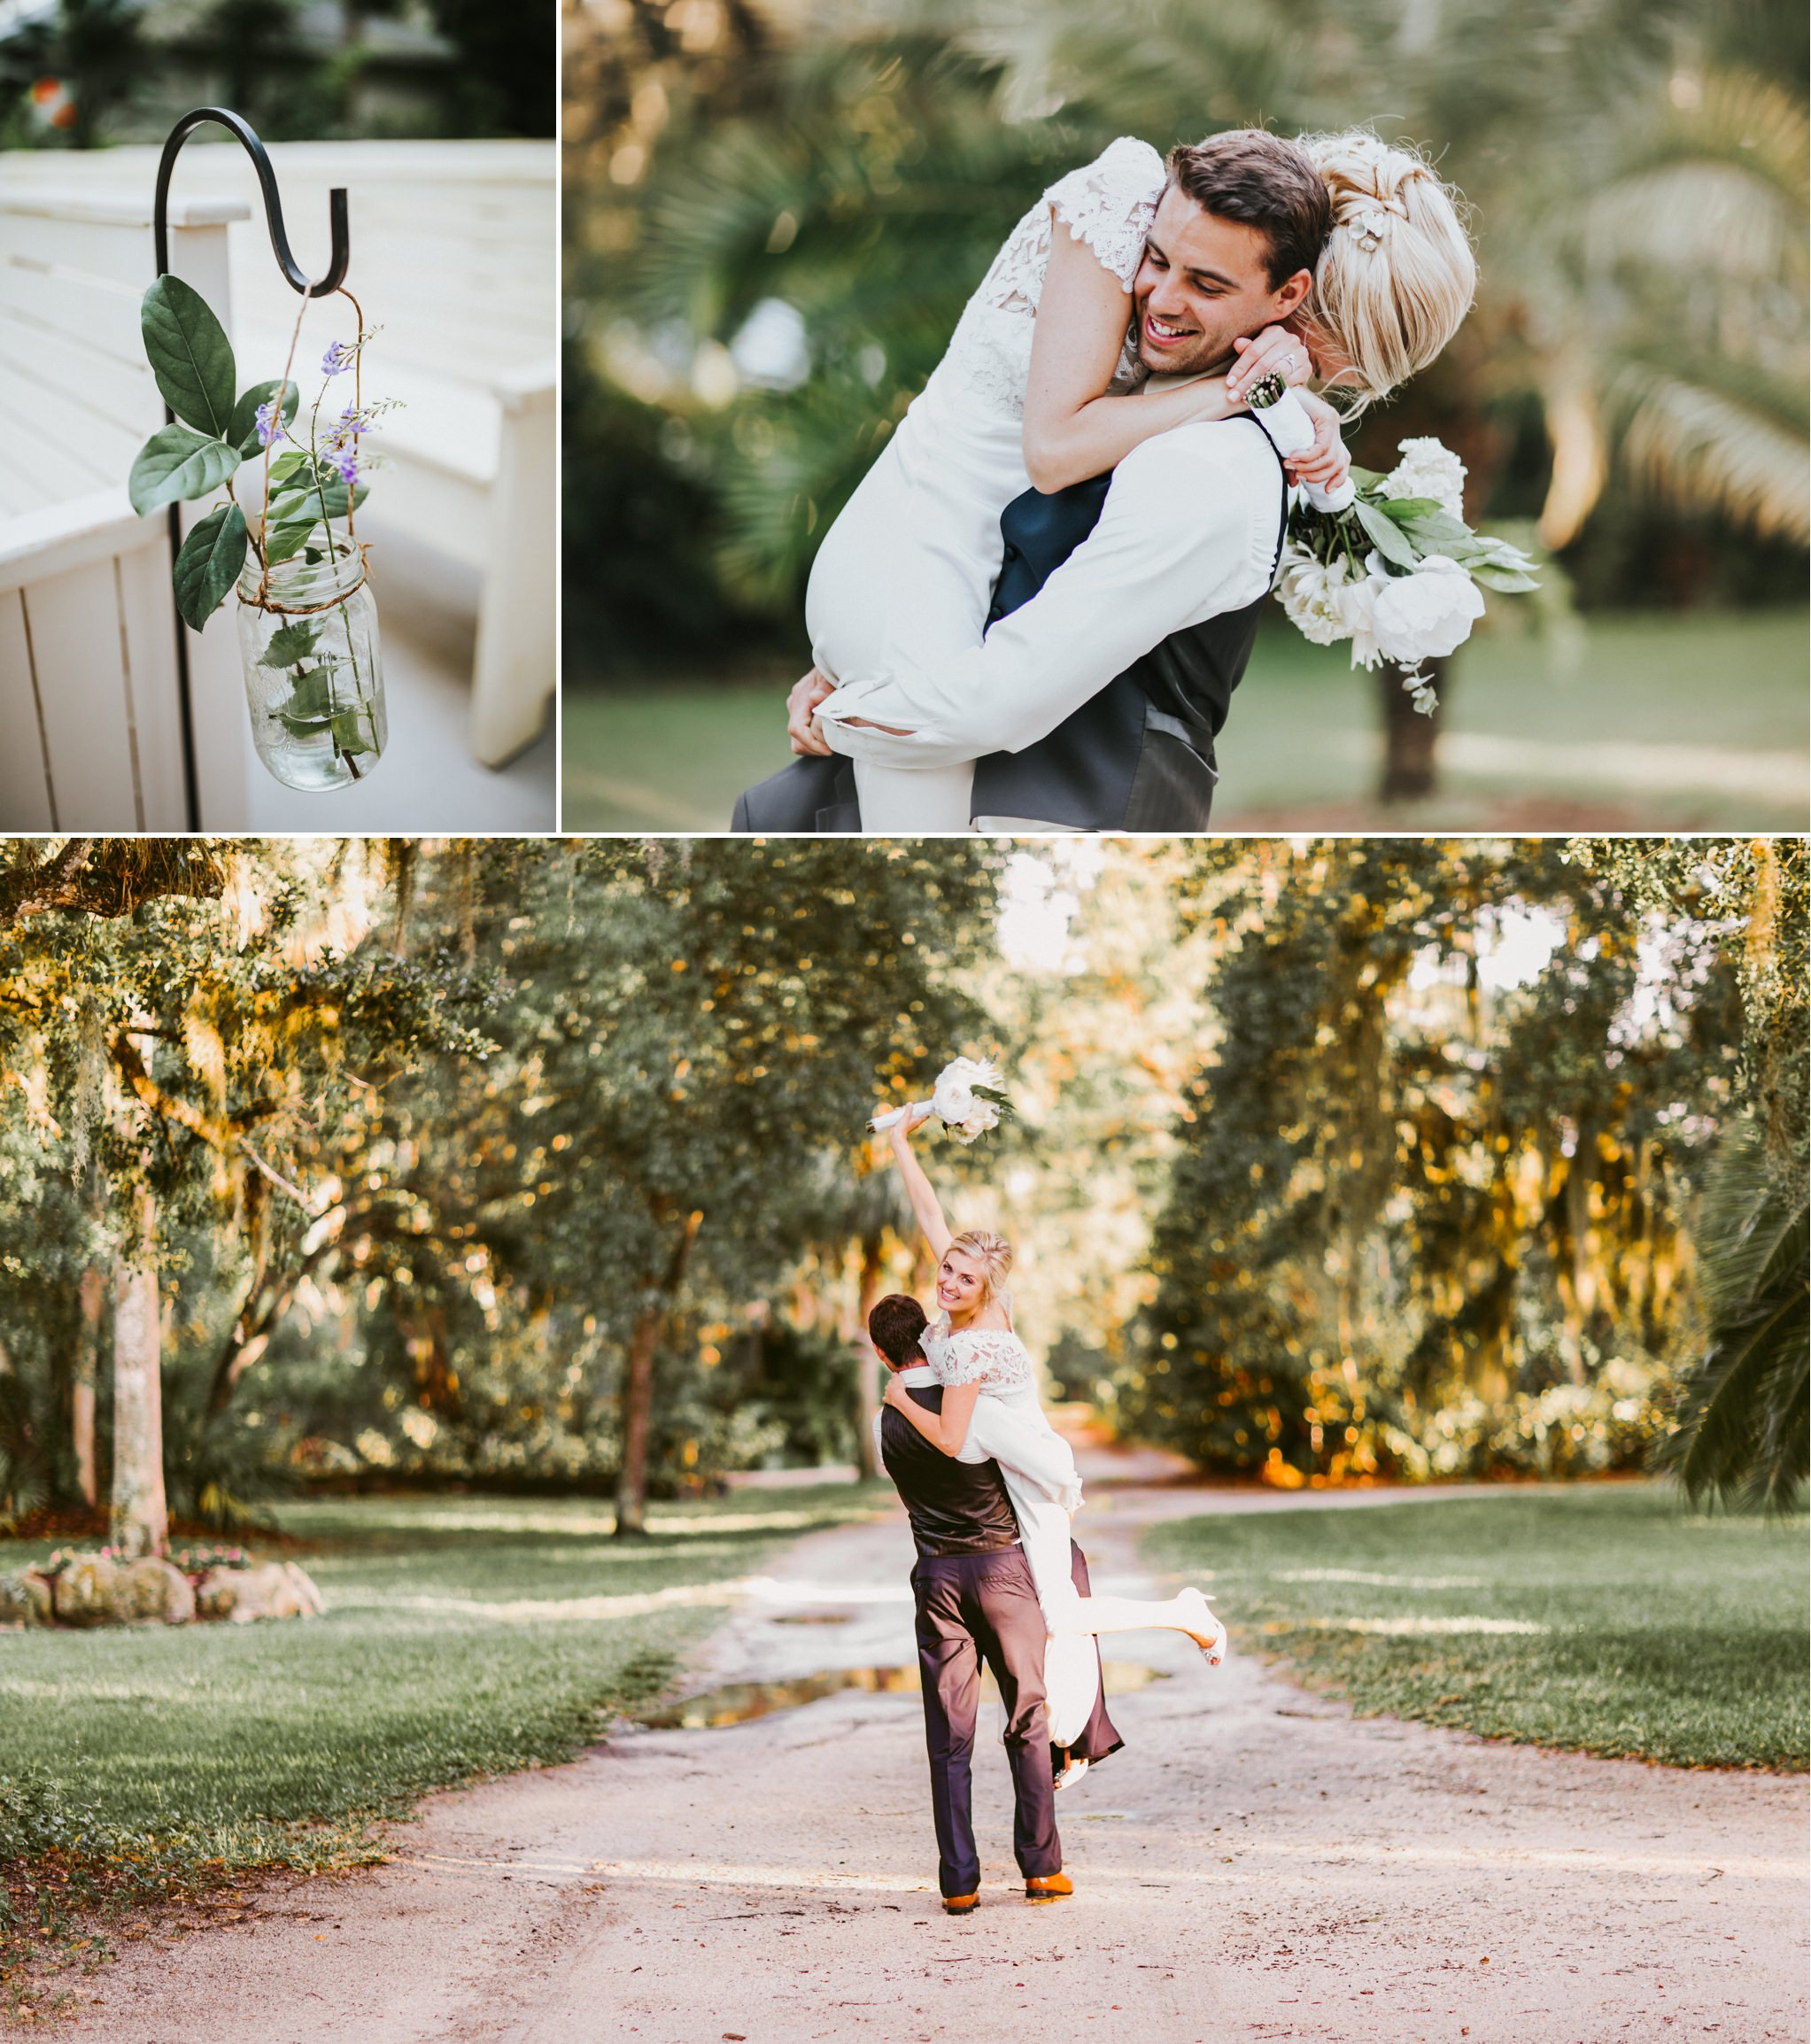 Boho Chic Orlando Wedding Photography Delameter House - Angela + Max 32.jpg